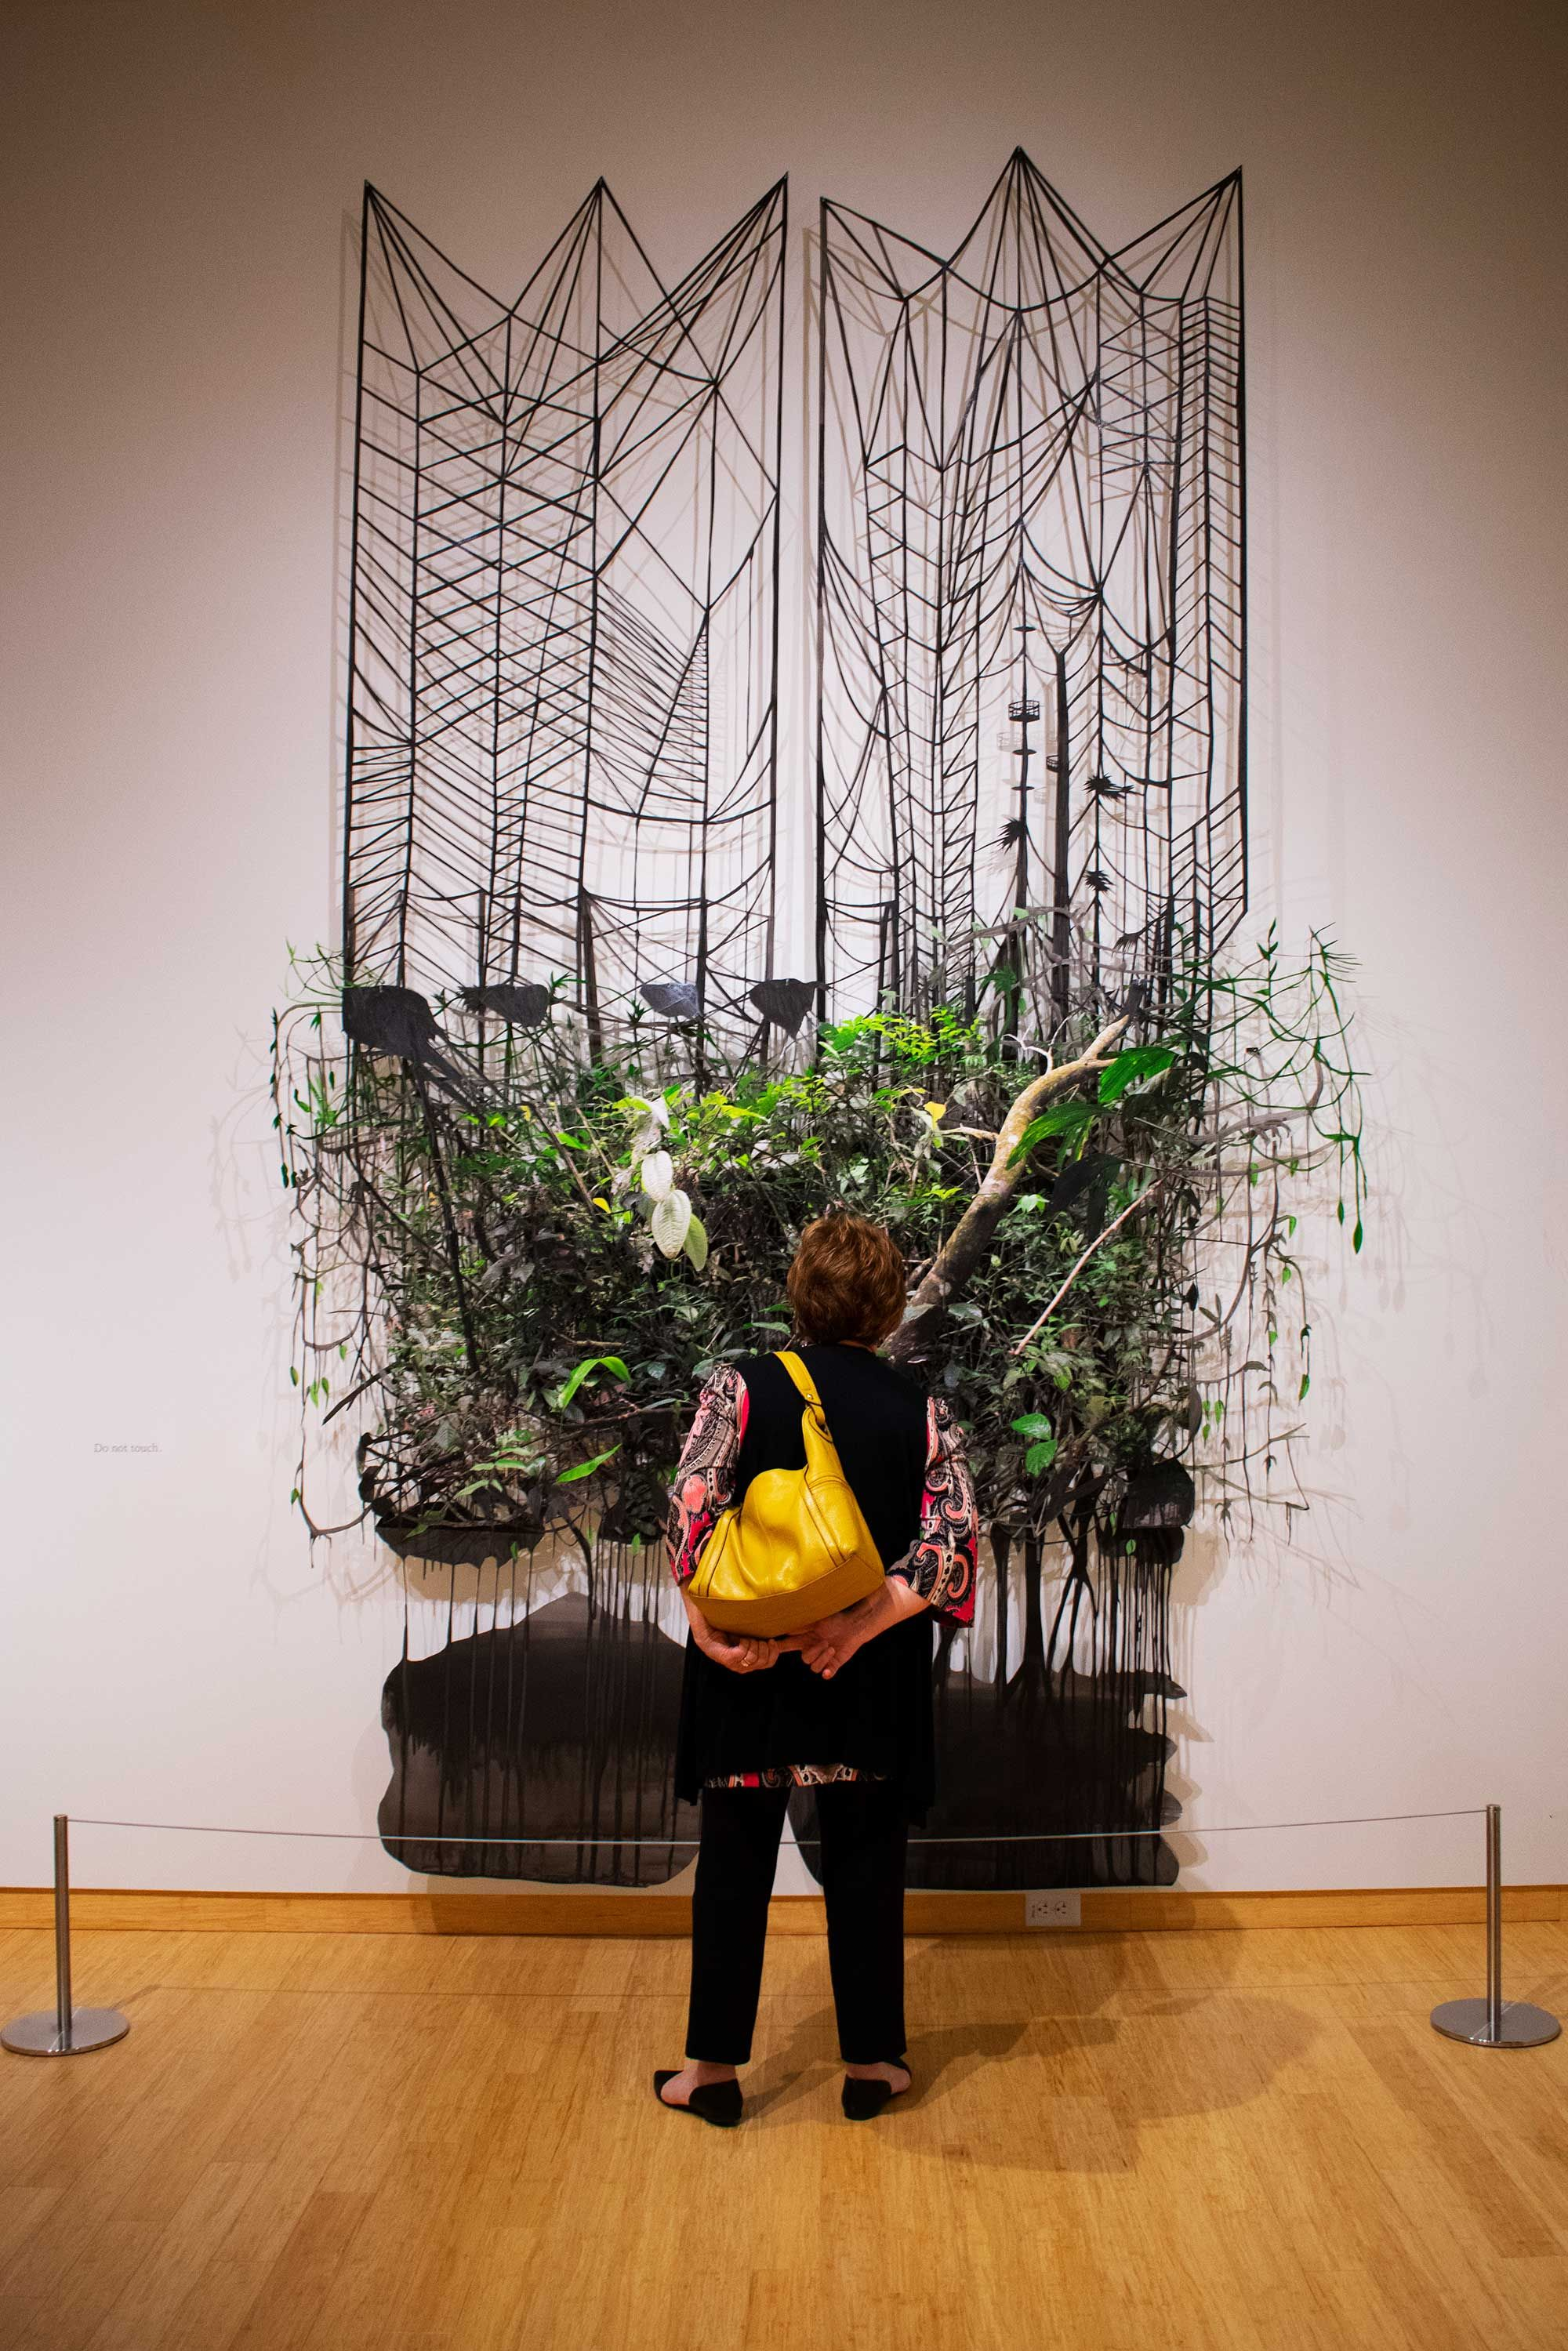 woman stands in front of art wth plants